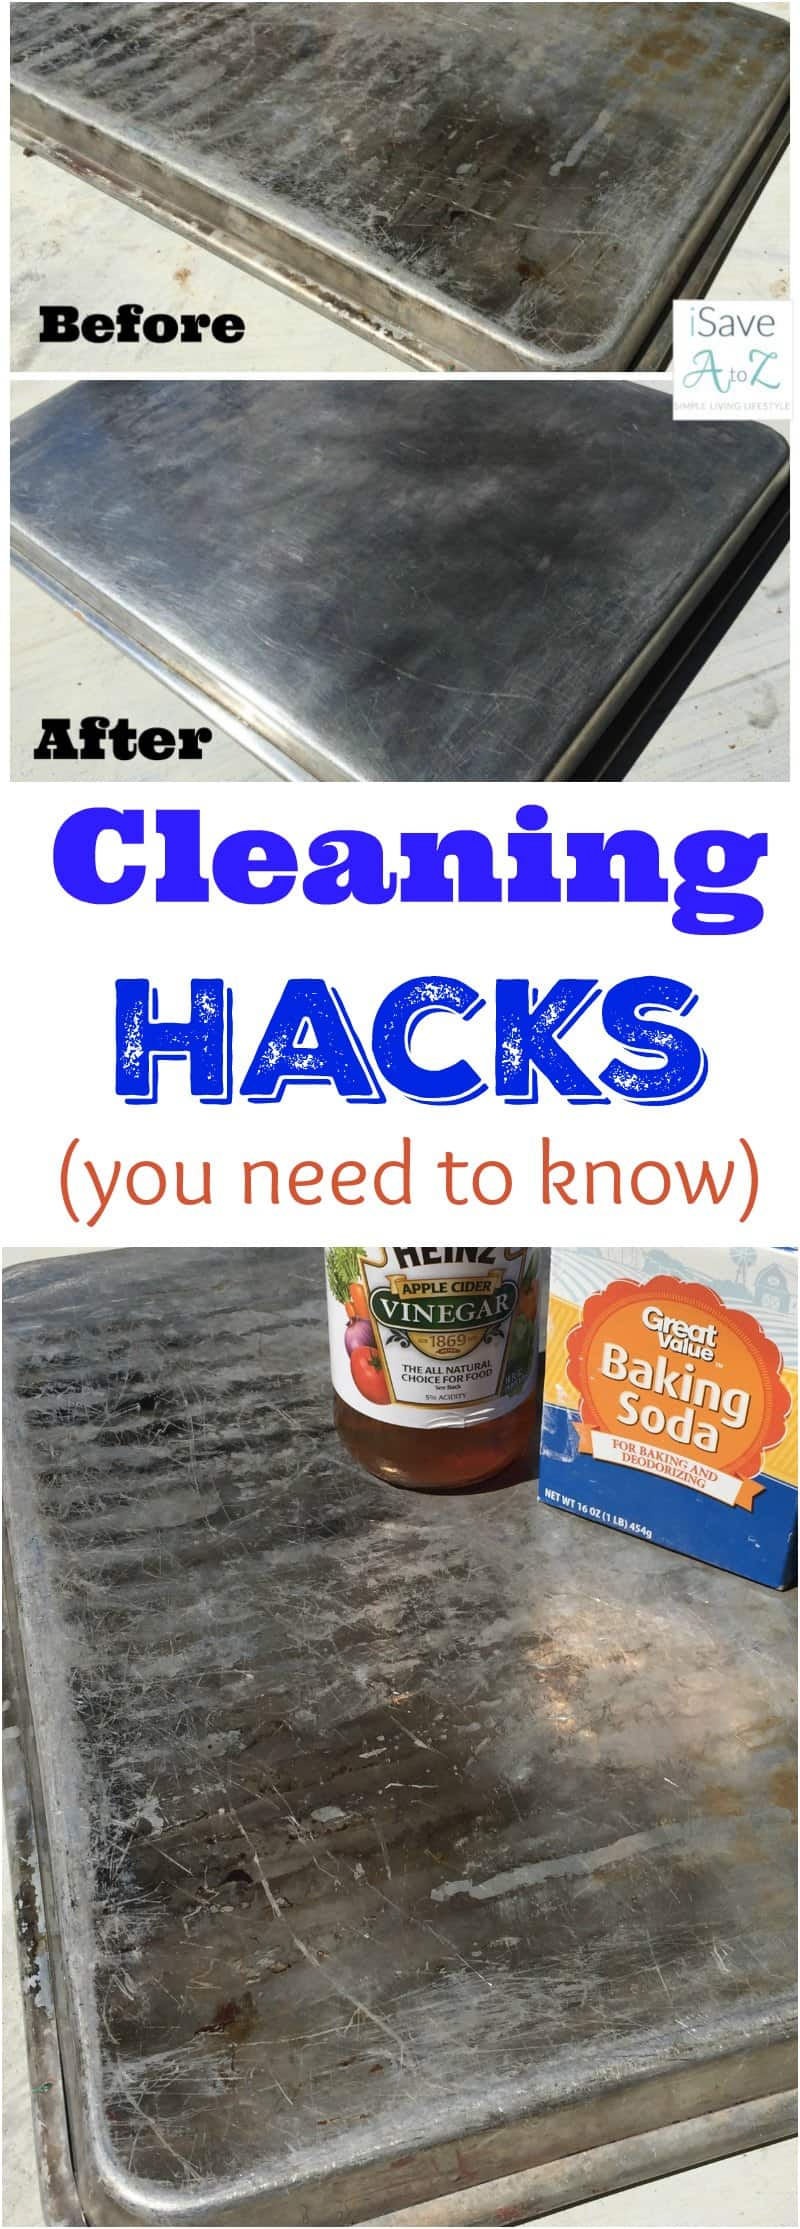 Baking Soda and Vinegar Uses you NEED to know!